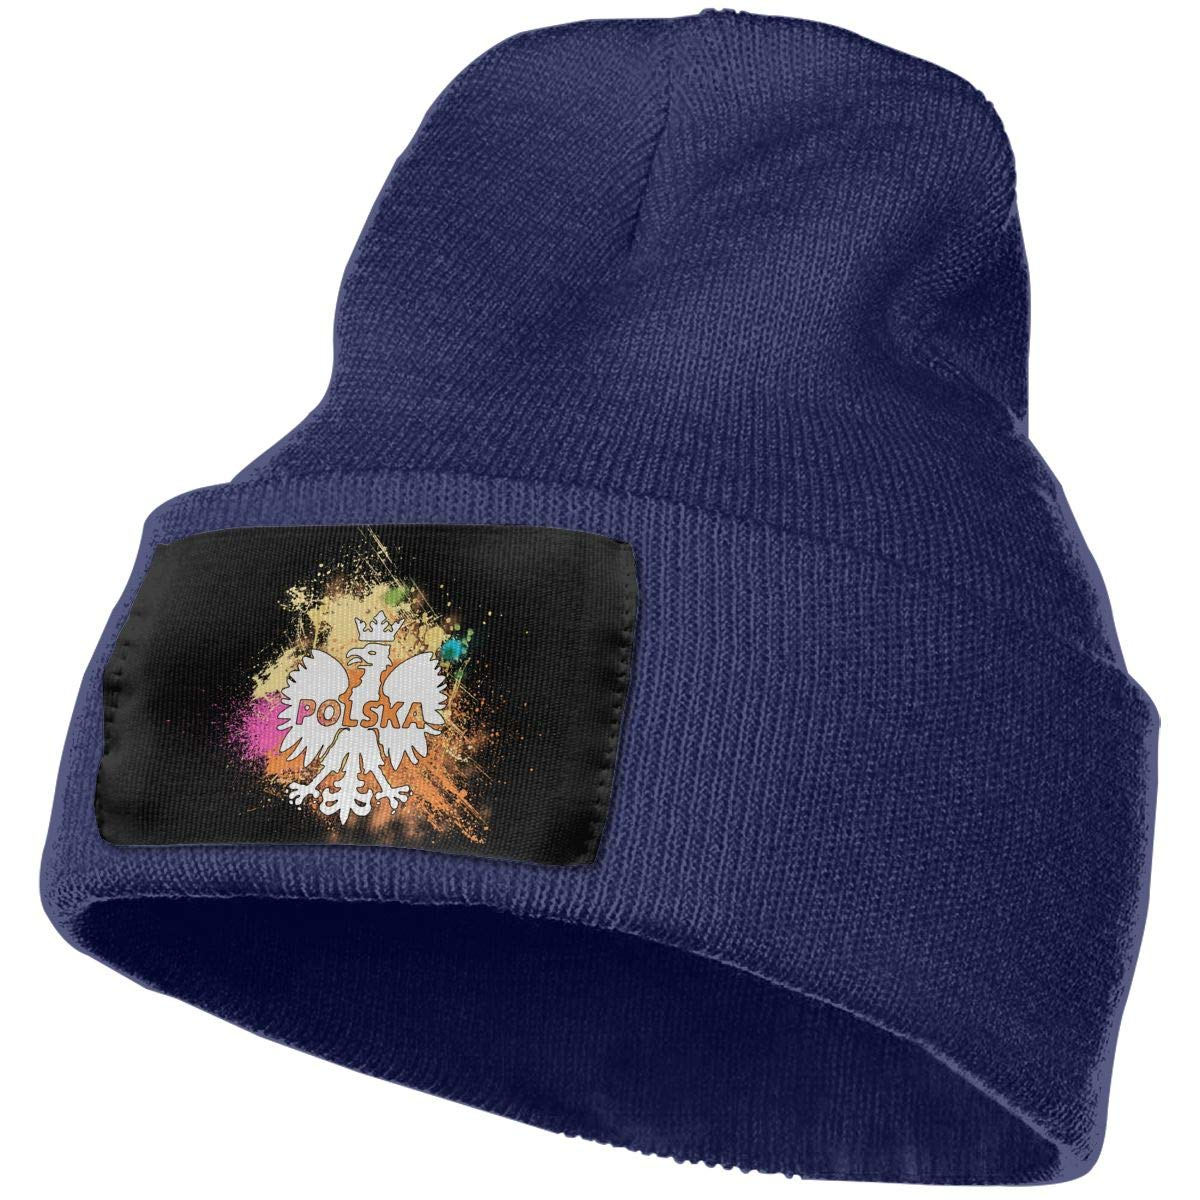 Skull Caps Dont Thread On Me Winter Warm Knit Hats Stretchy Cuff Beanie Hat Black